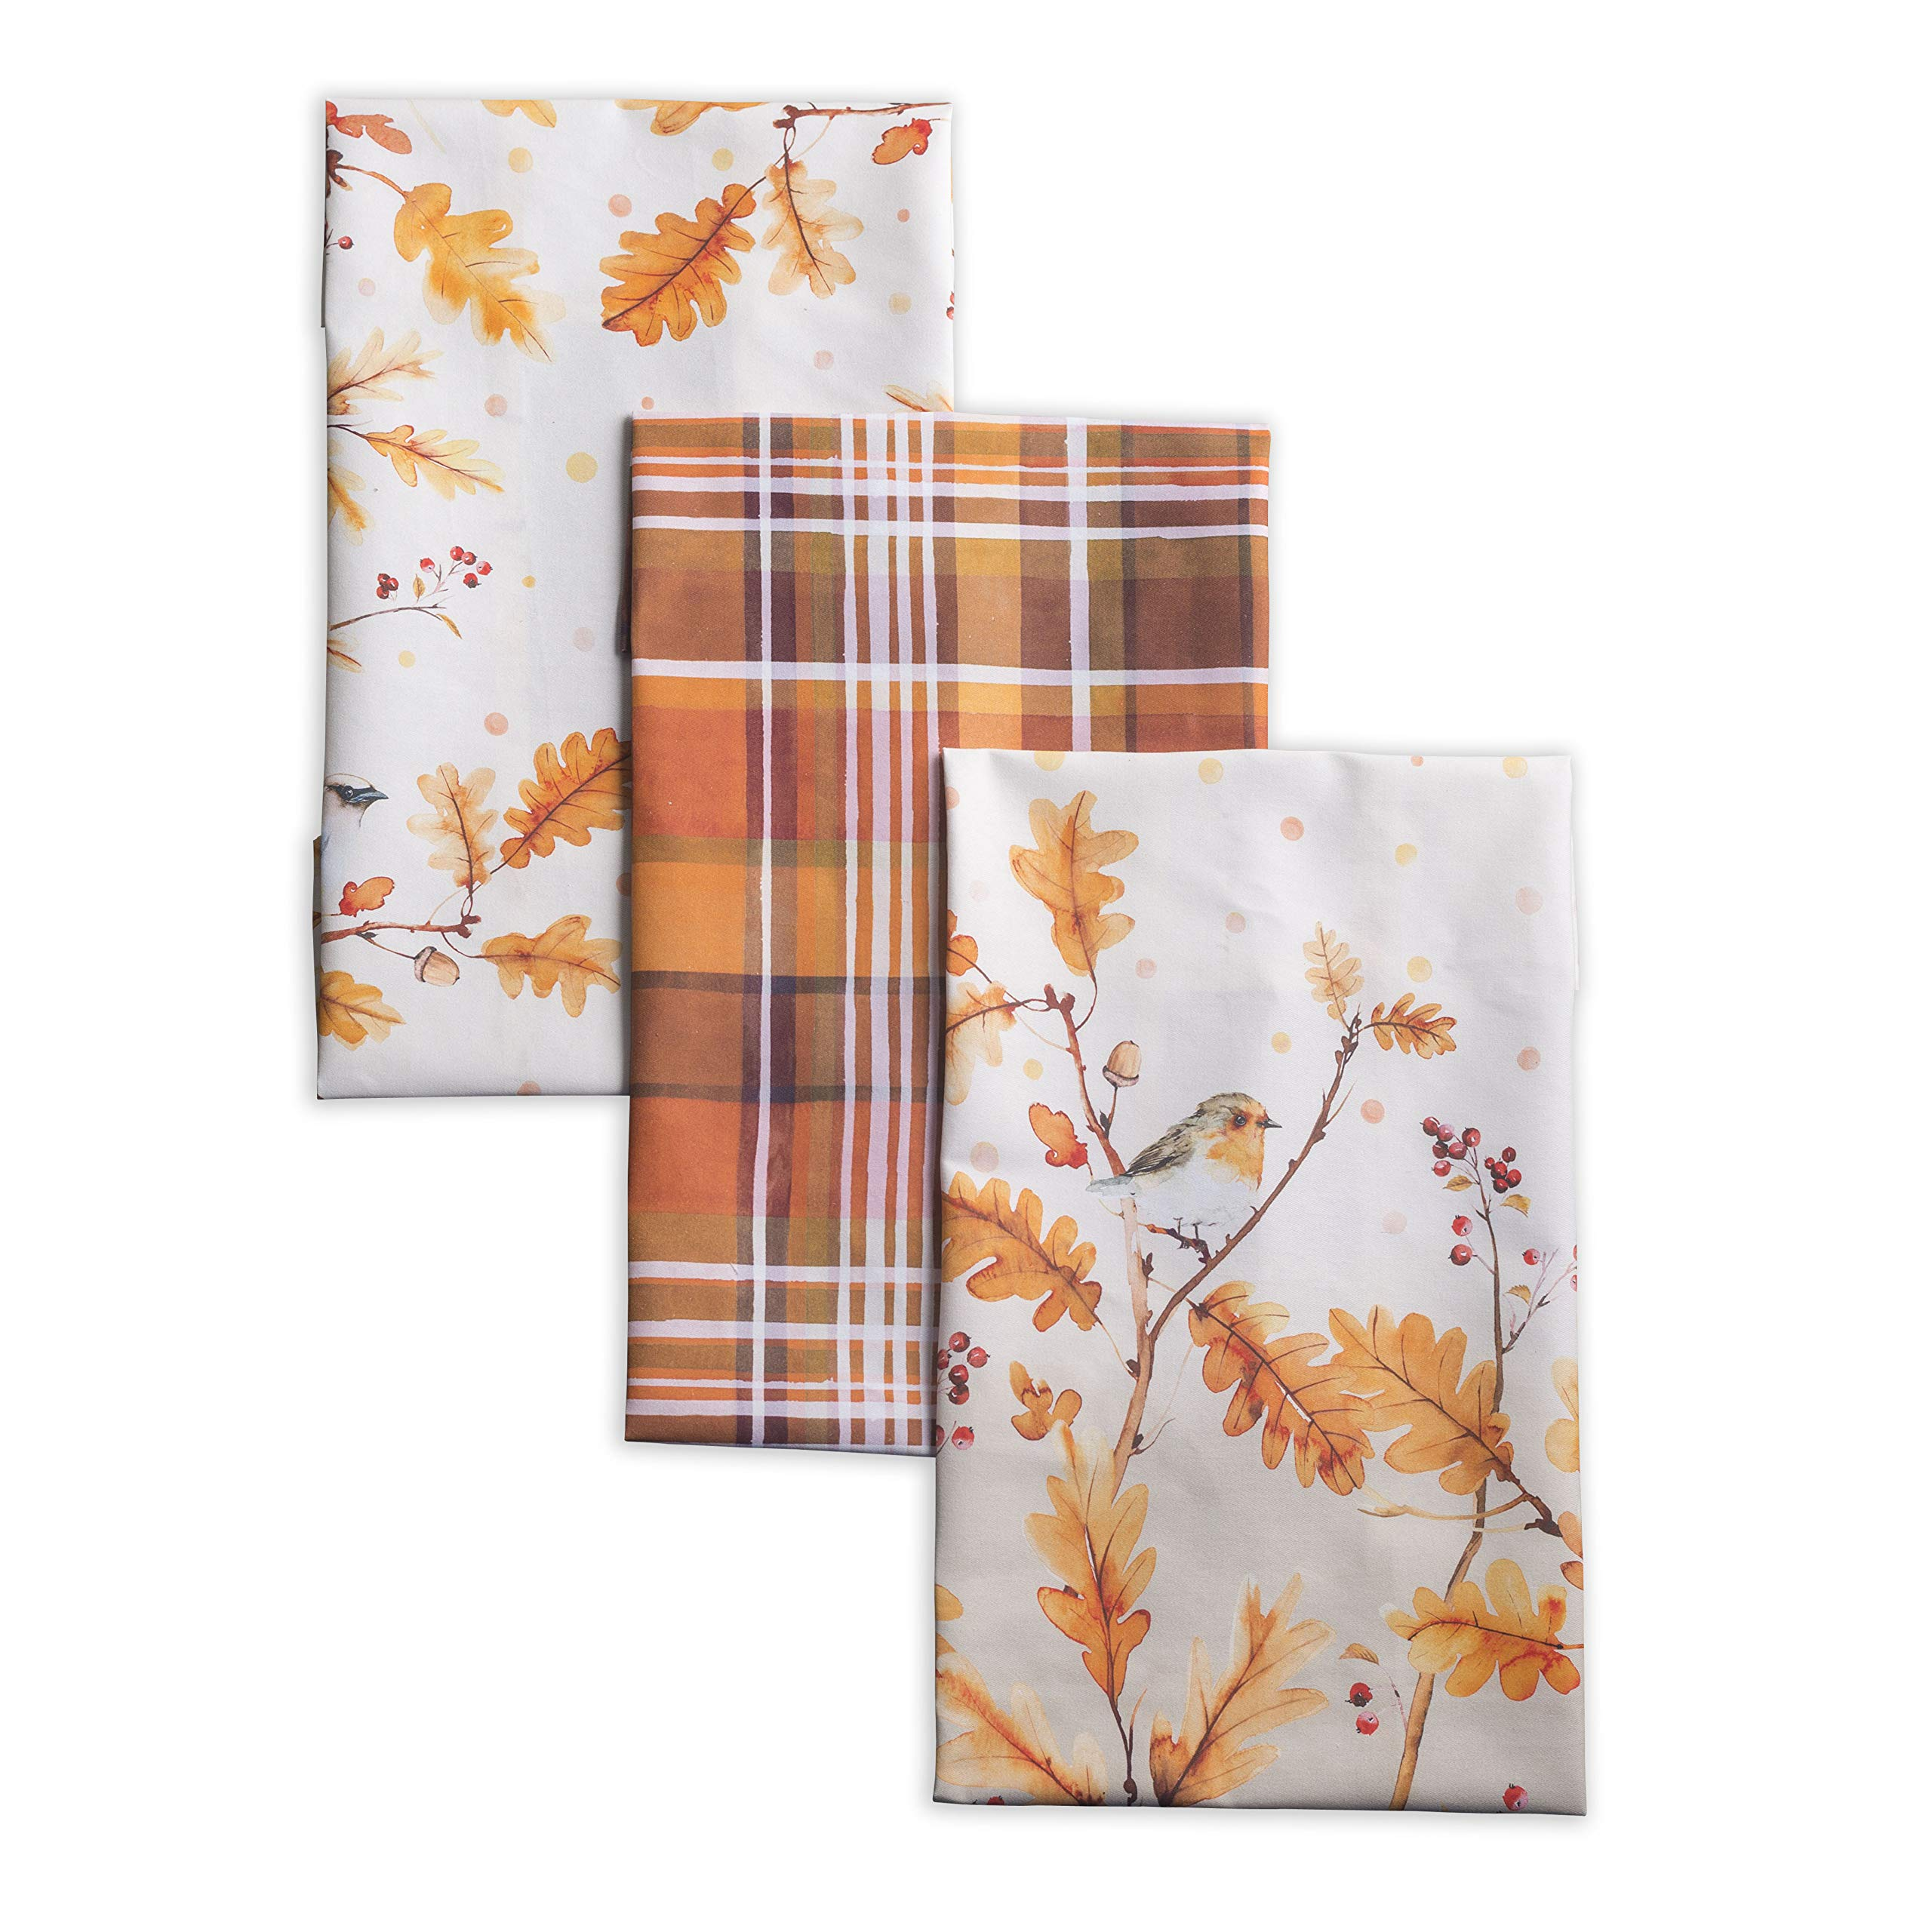 Maison d'Hermine Oak Leaves 100% Cotton Set of 3 Kitchen Towels 20 Inch by 27.5 Inch